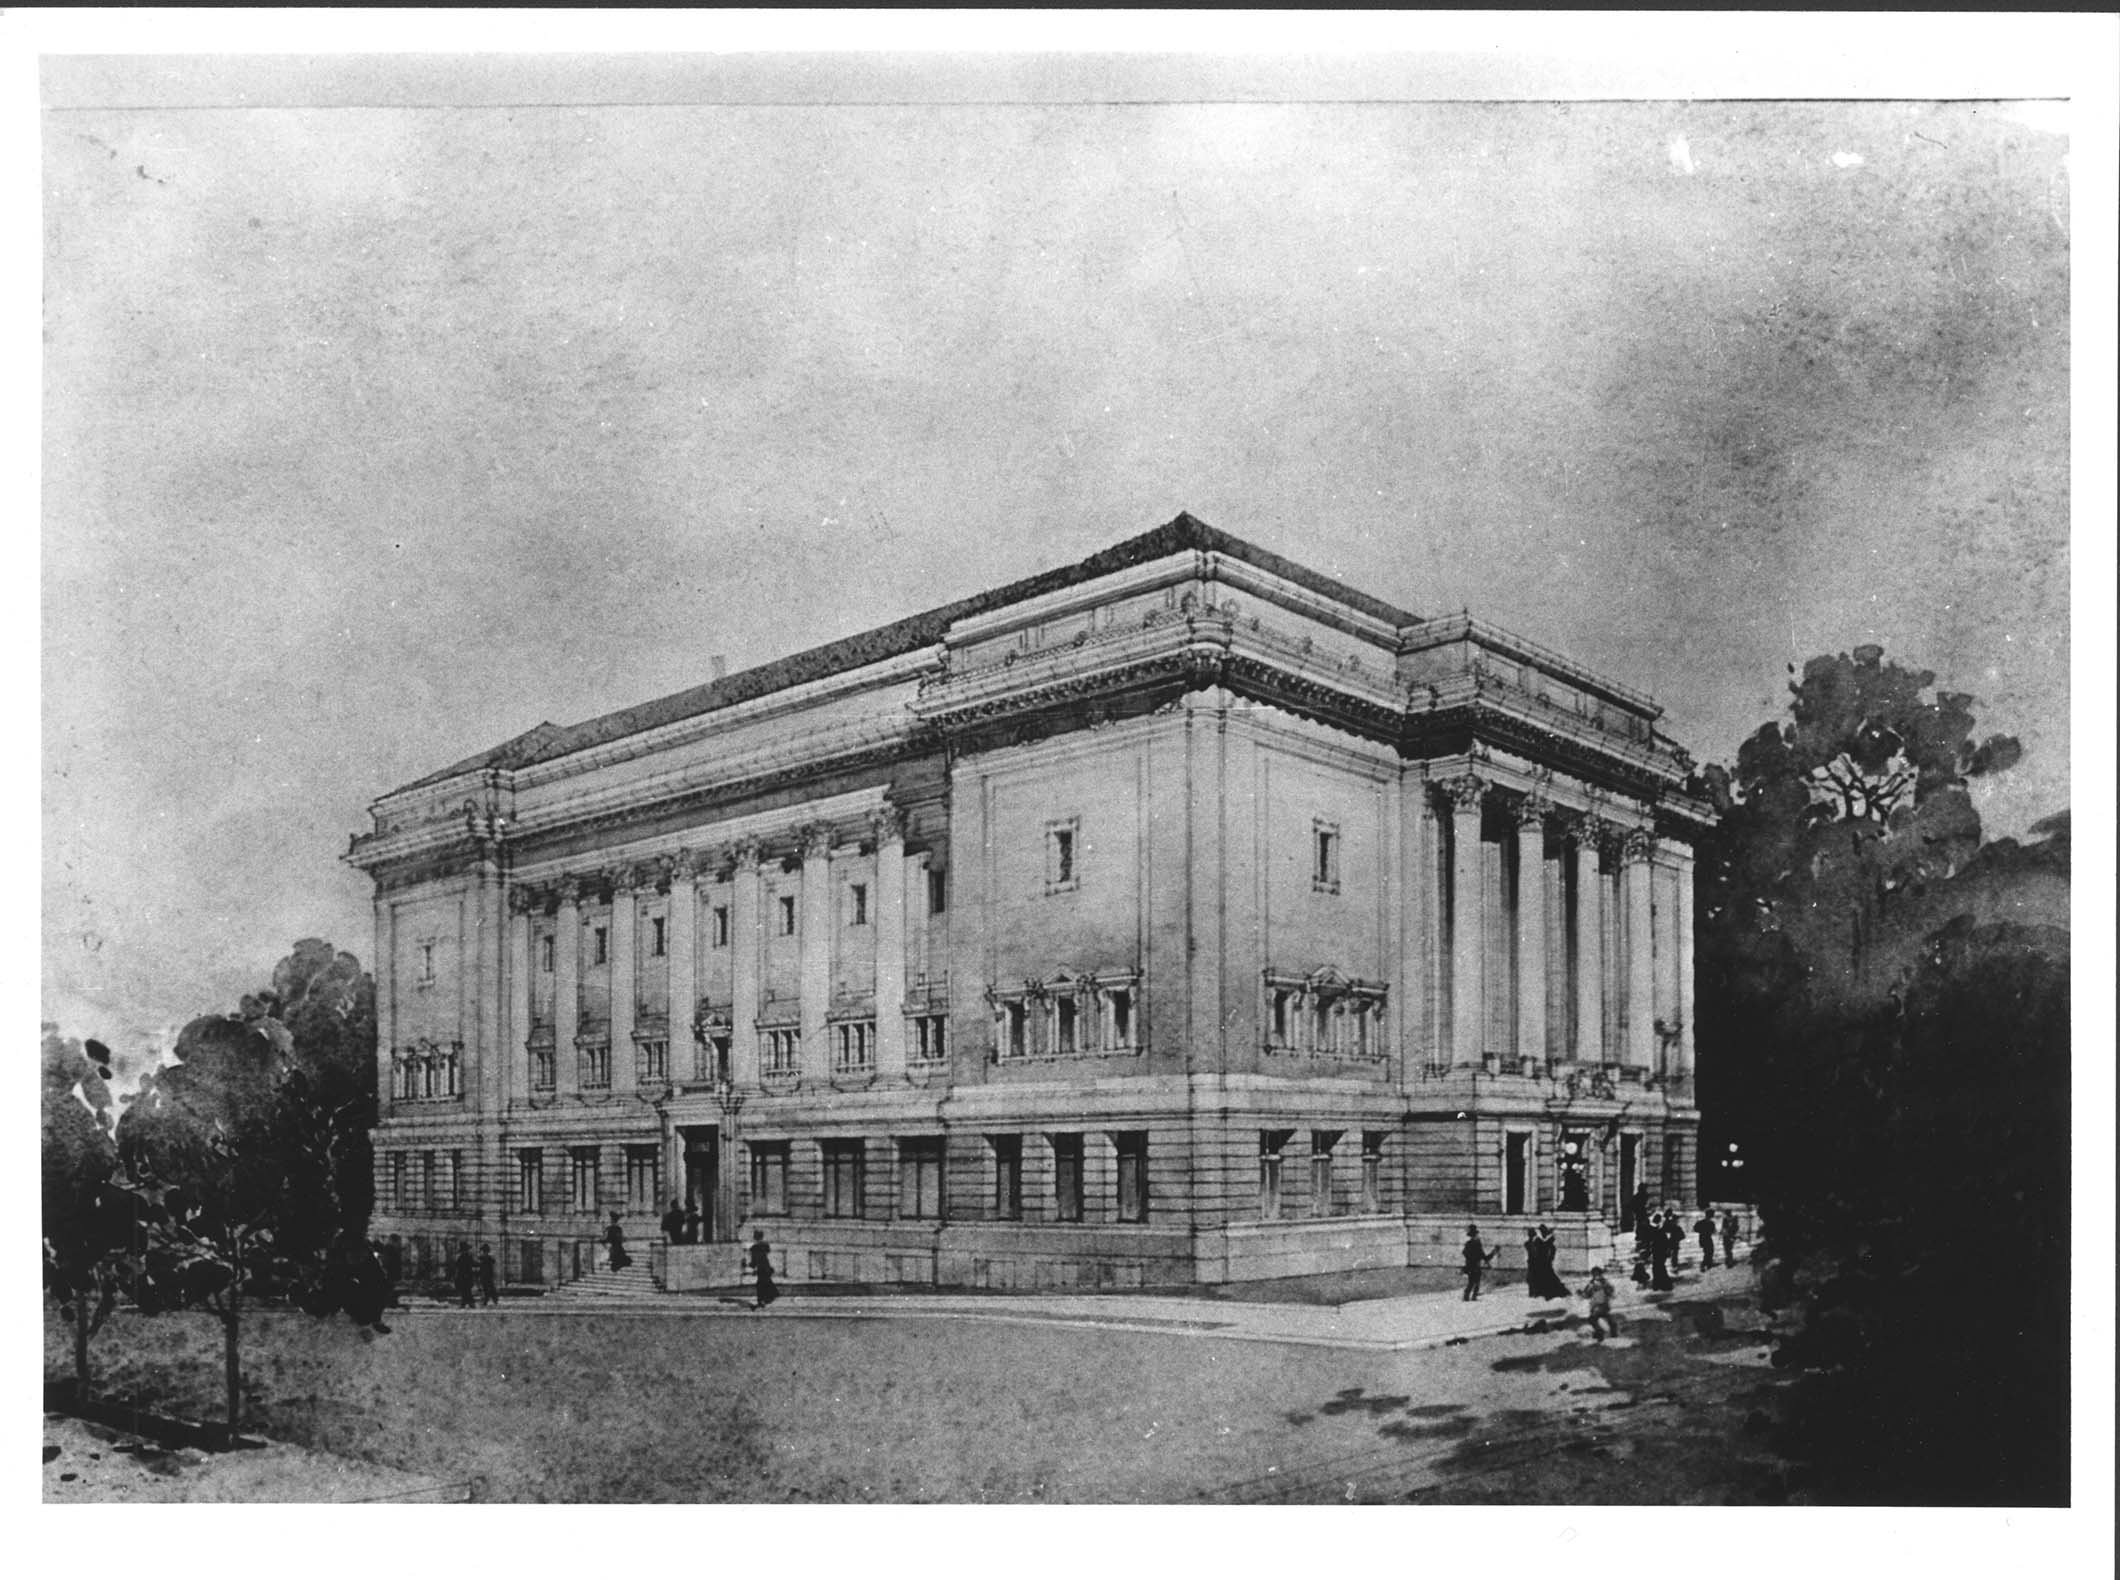 The third and final city hall building, shortly after its completion. Image courtesy of Marshall University Special Collections.